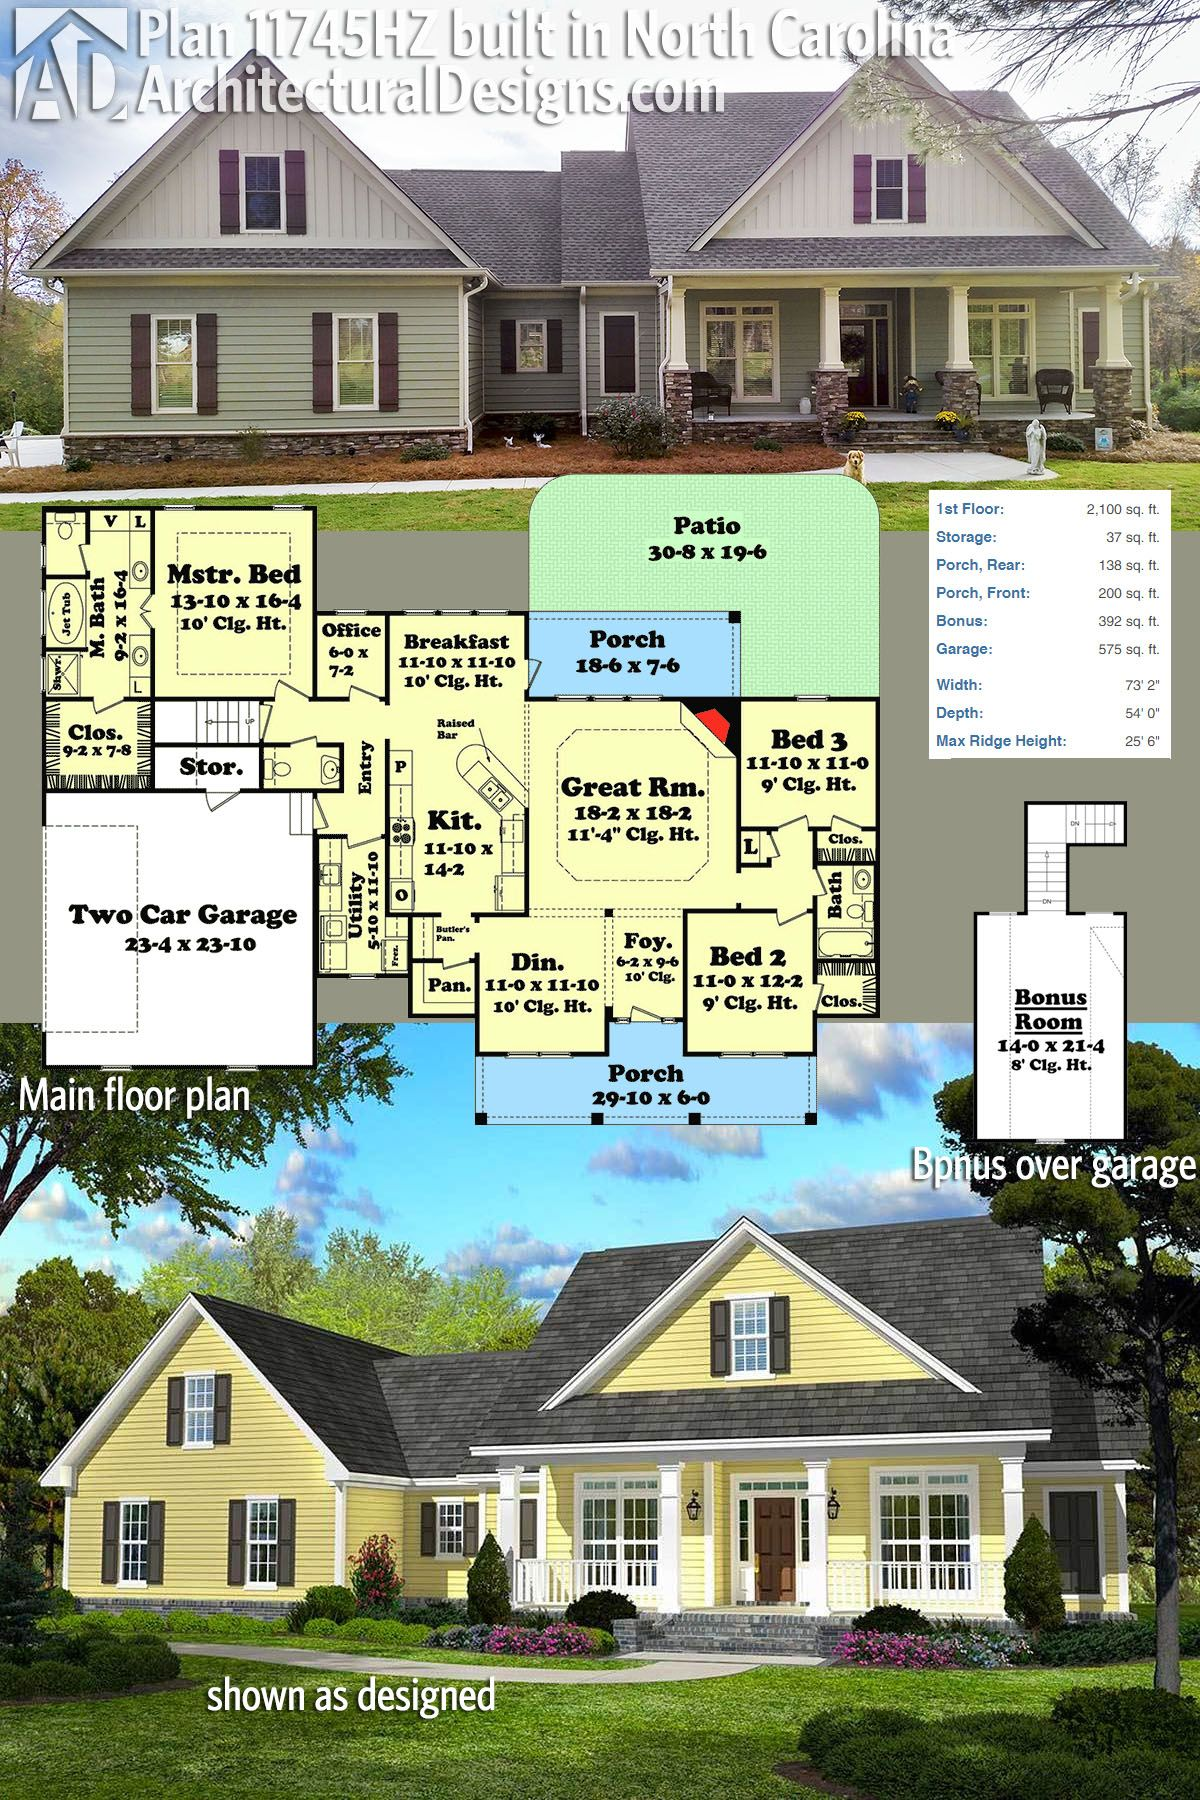 Architectural Designs House Plan 11745HZ was built